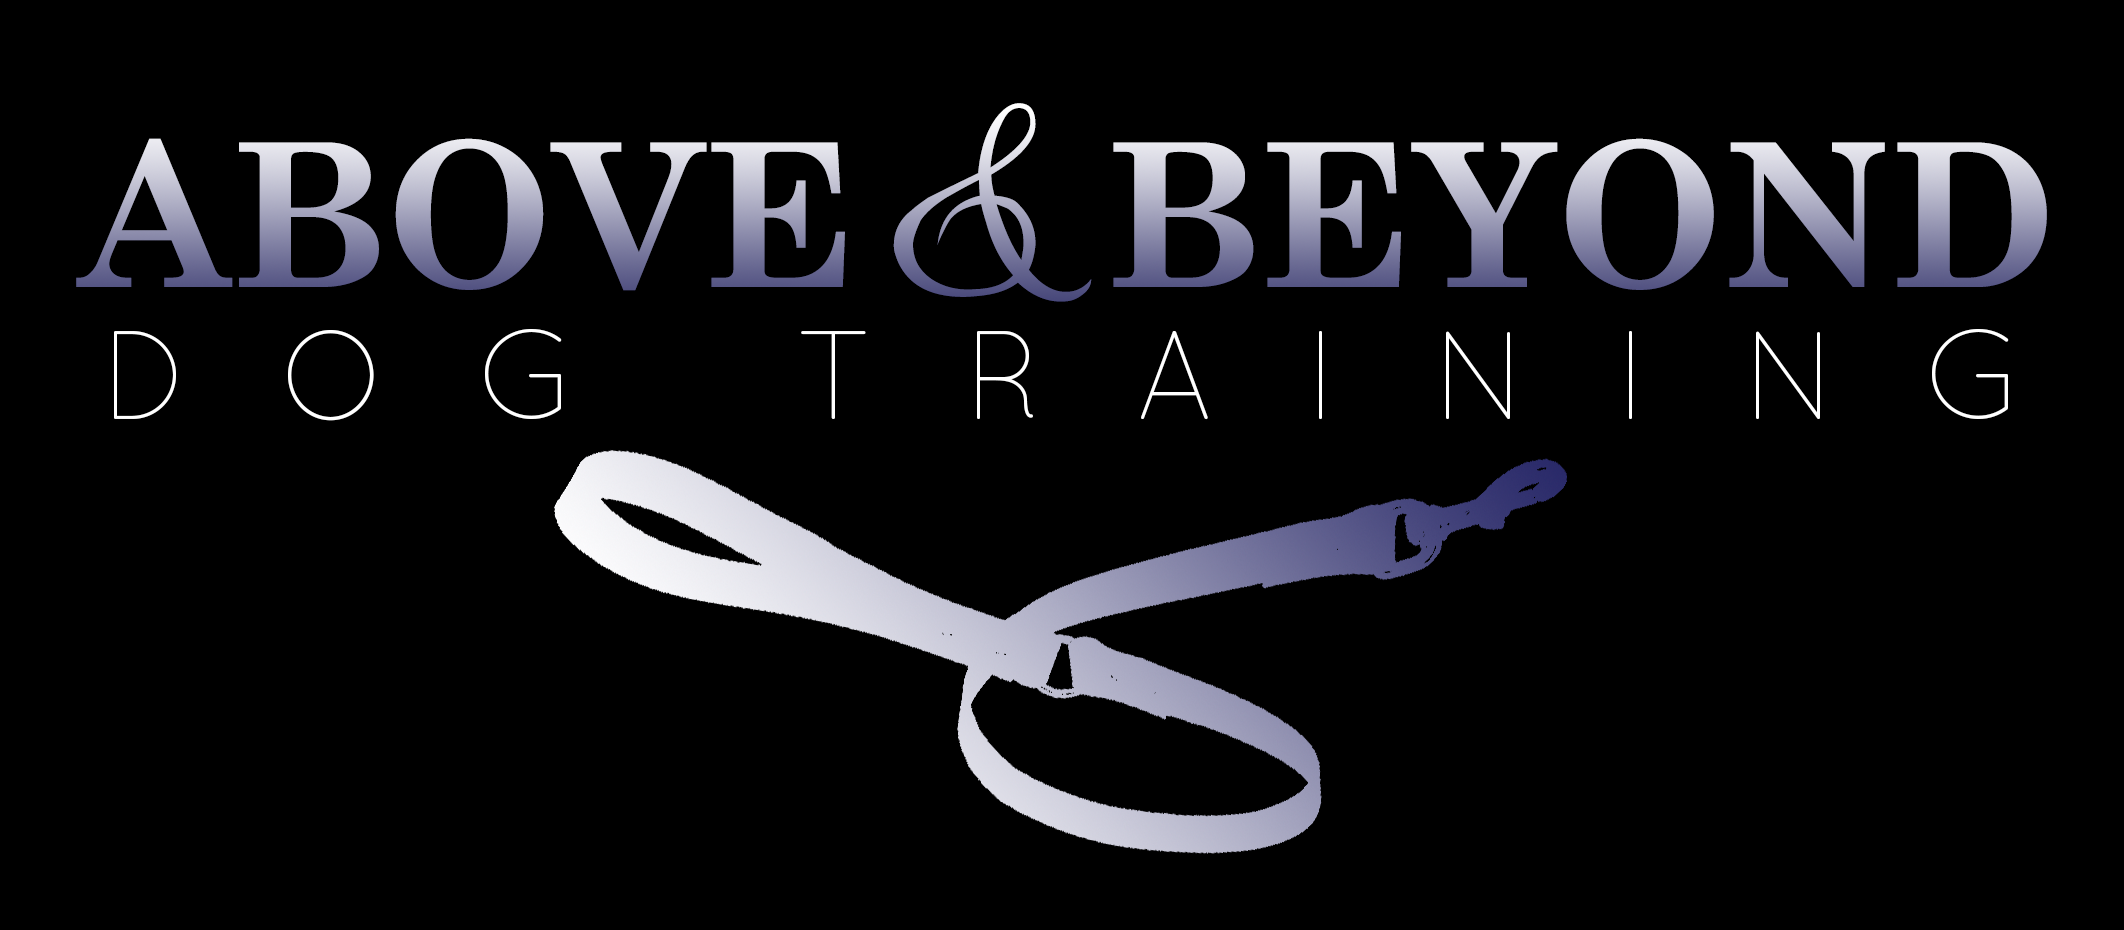 Above and Beyond Dog Training